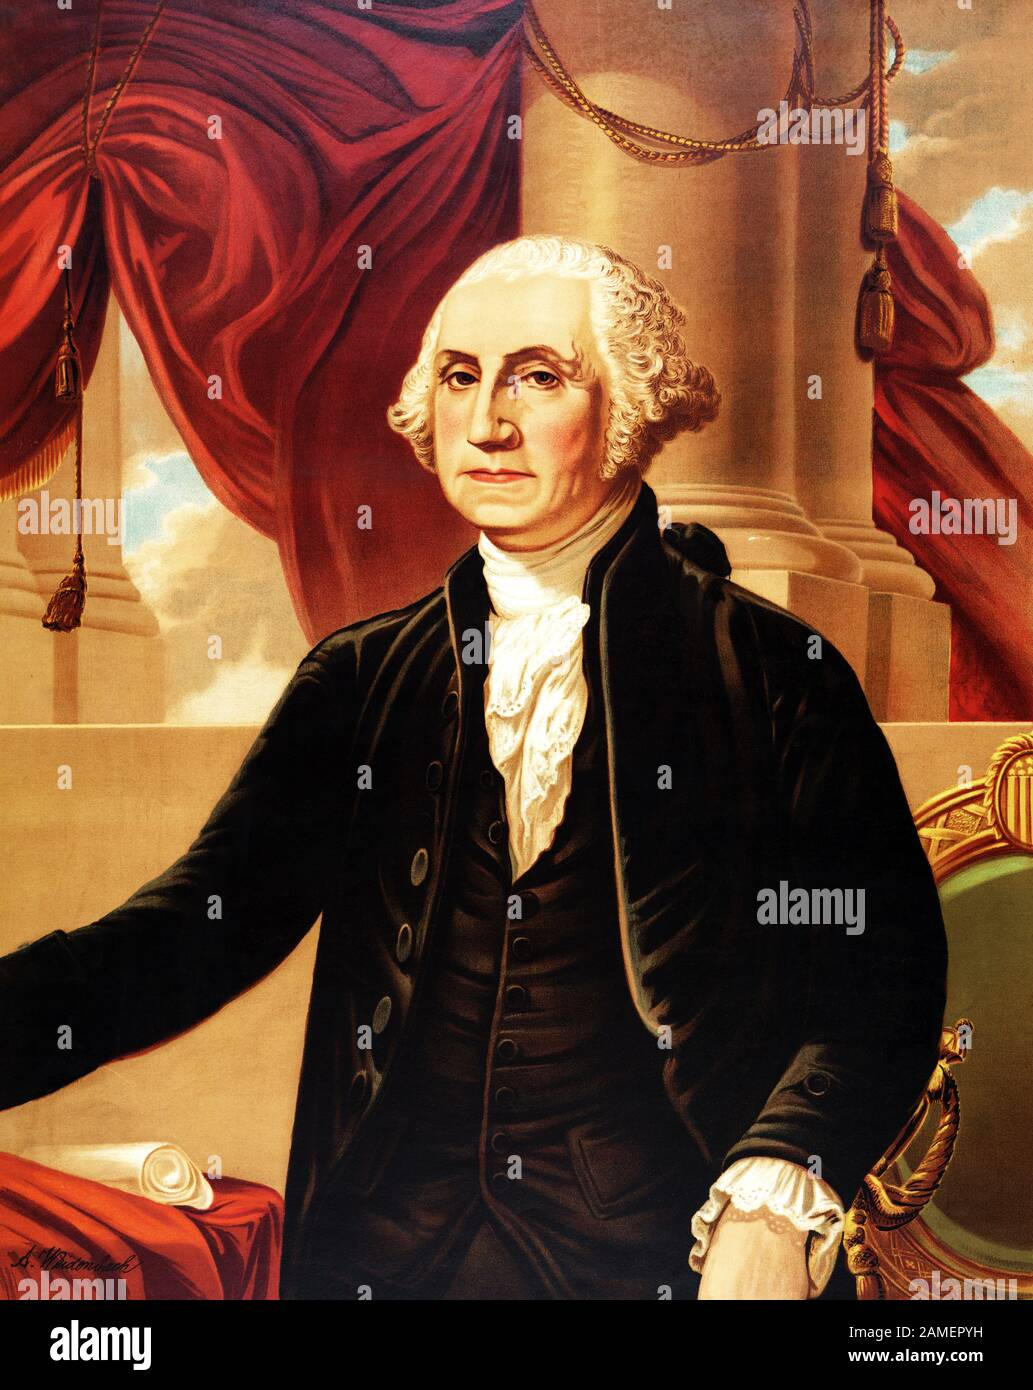 Vintage portrait of George Washington (1732 - 1799) – Commander of the Continental Army in the American Revolutionary War / War of Independence (1775 – 1783) and the first US President (1789 - 1797). Chromolithograph print circa 1876 by Augustus Weidenbach, after a painting by artist Gilbert Stuart (1755 – 1828). Stock Photo